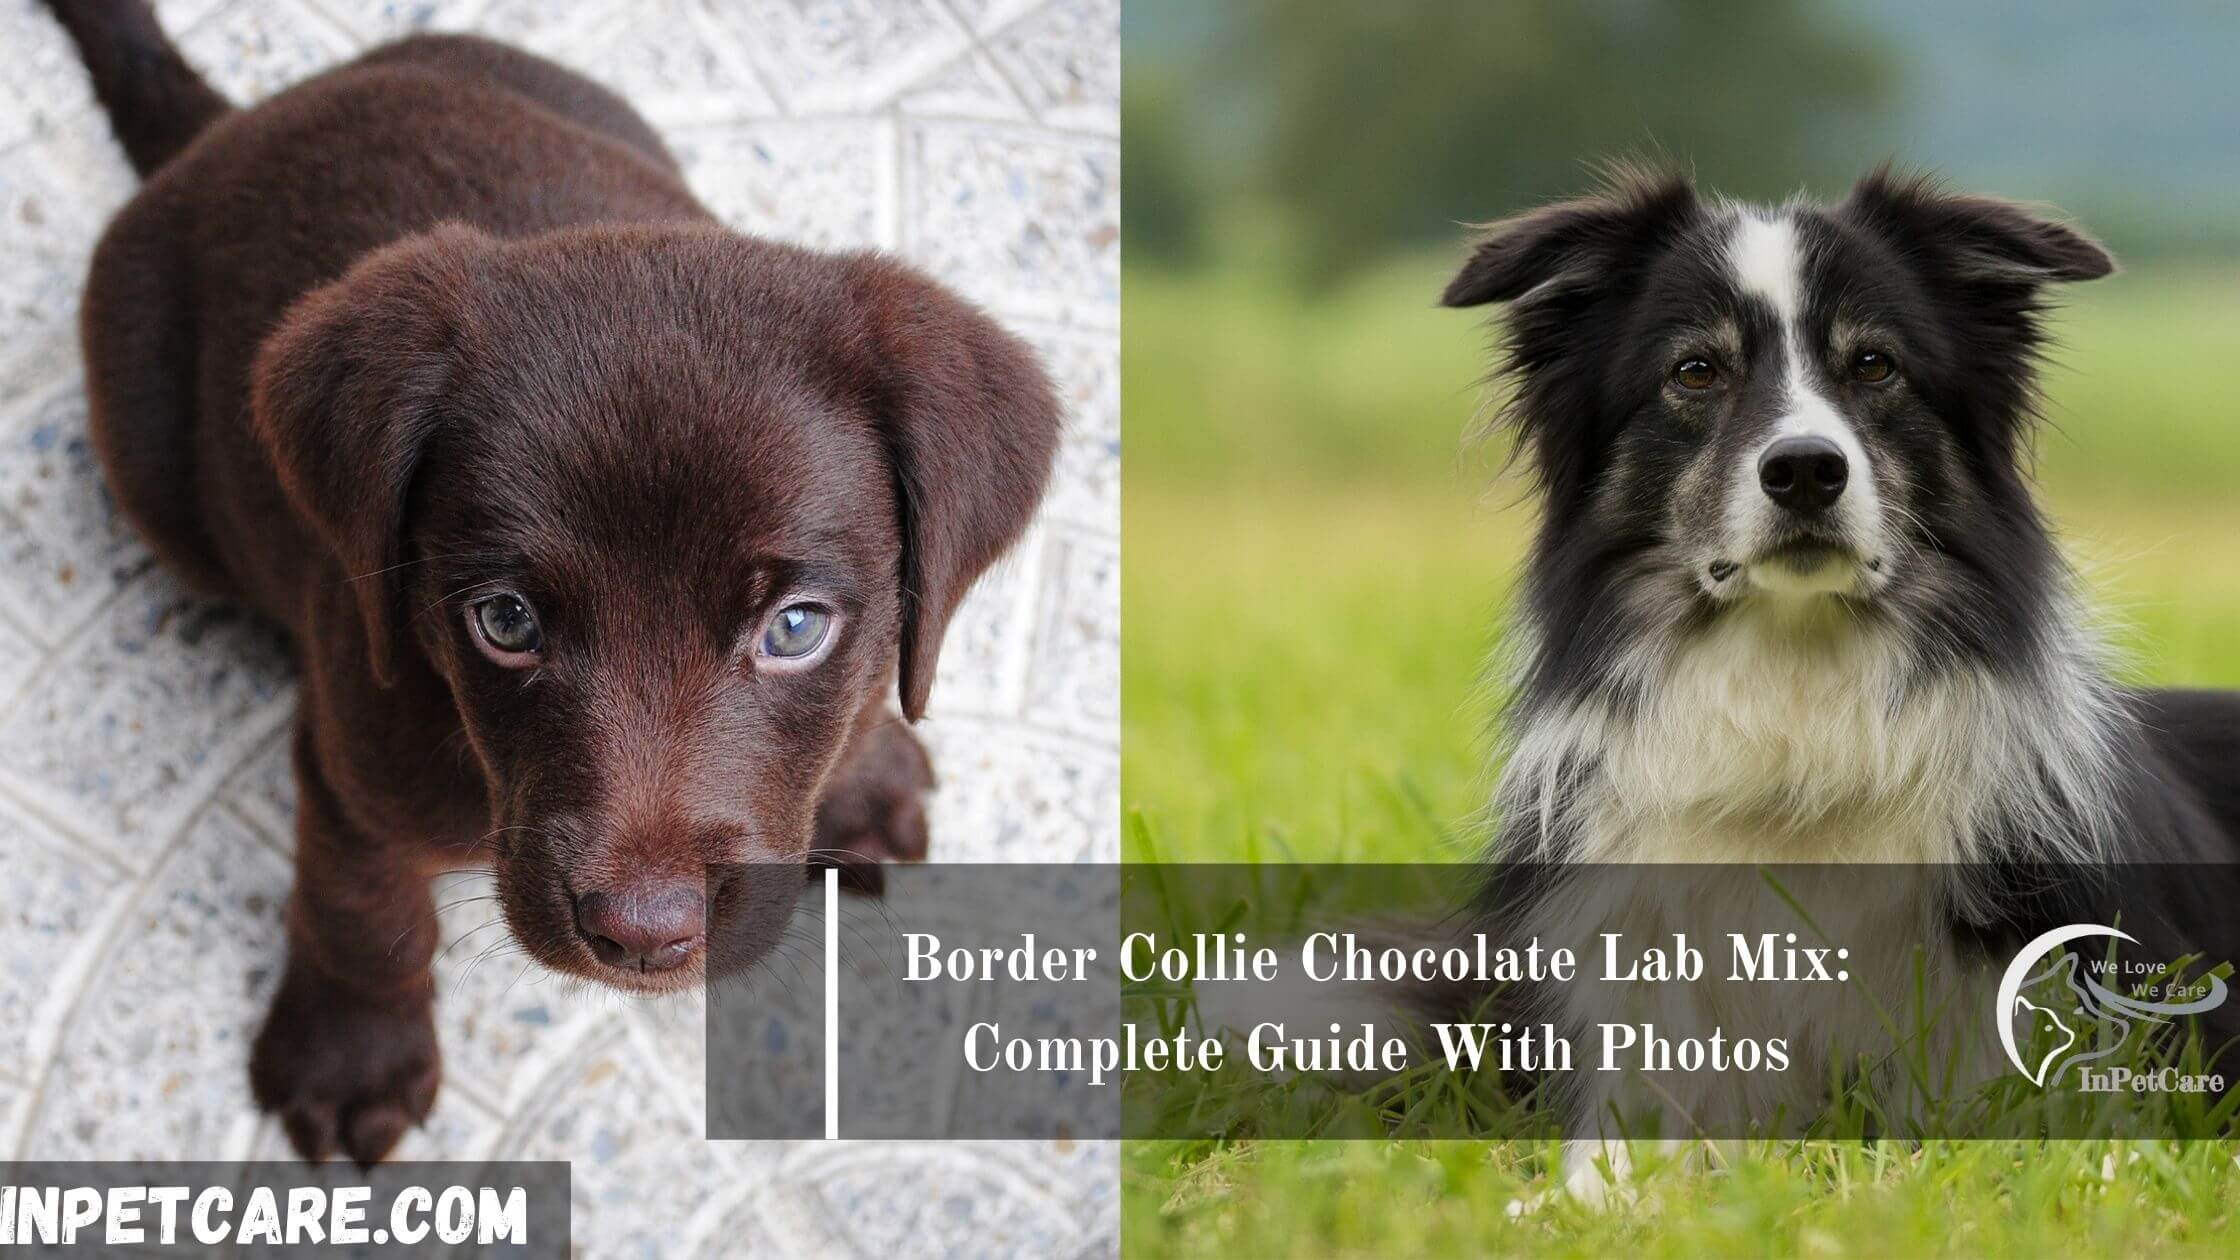 Border Collie Chocolate Lab Mix